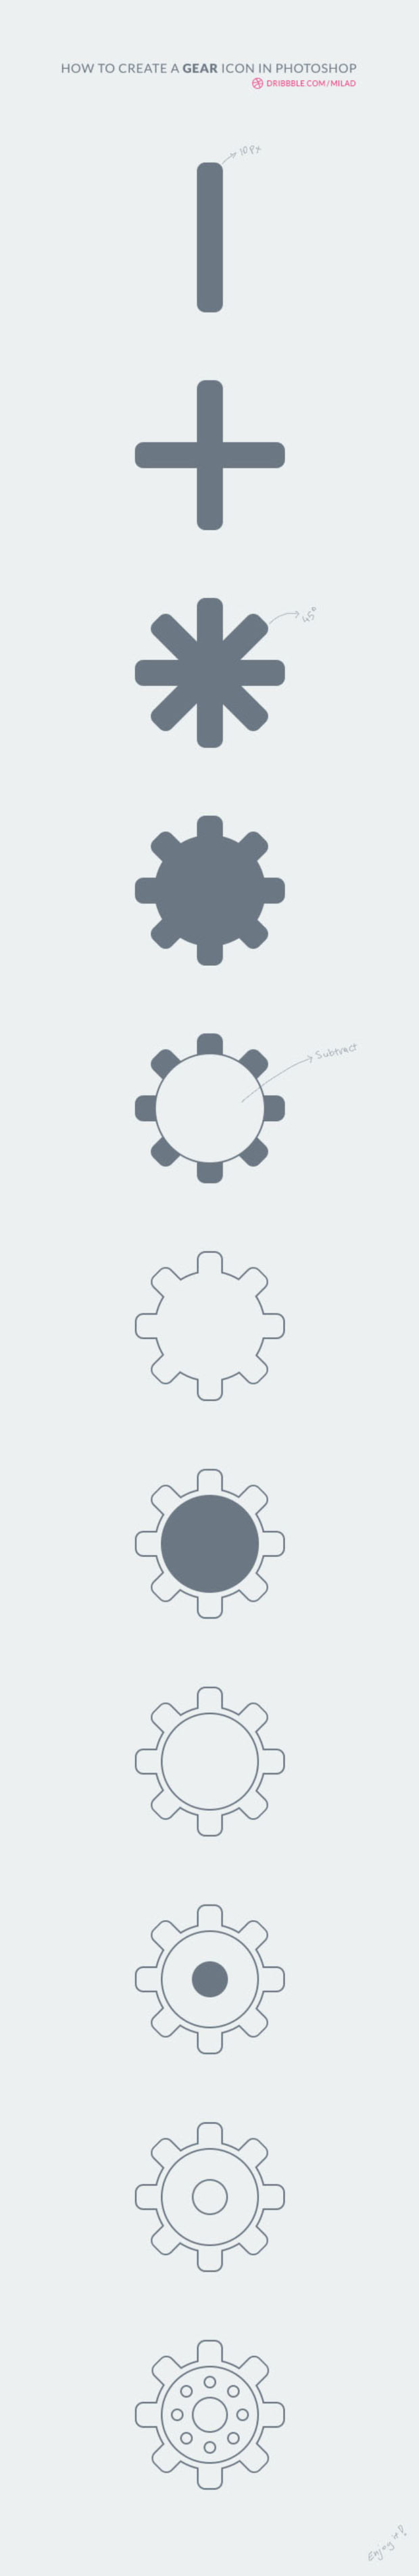 Simple-Gear-icon-in-photoshop-PSD